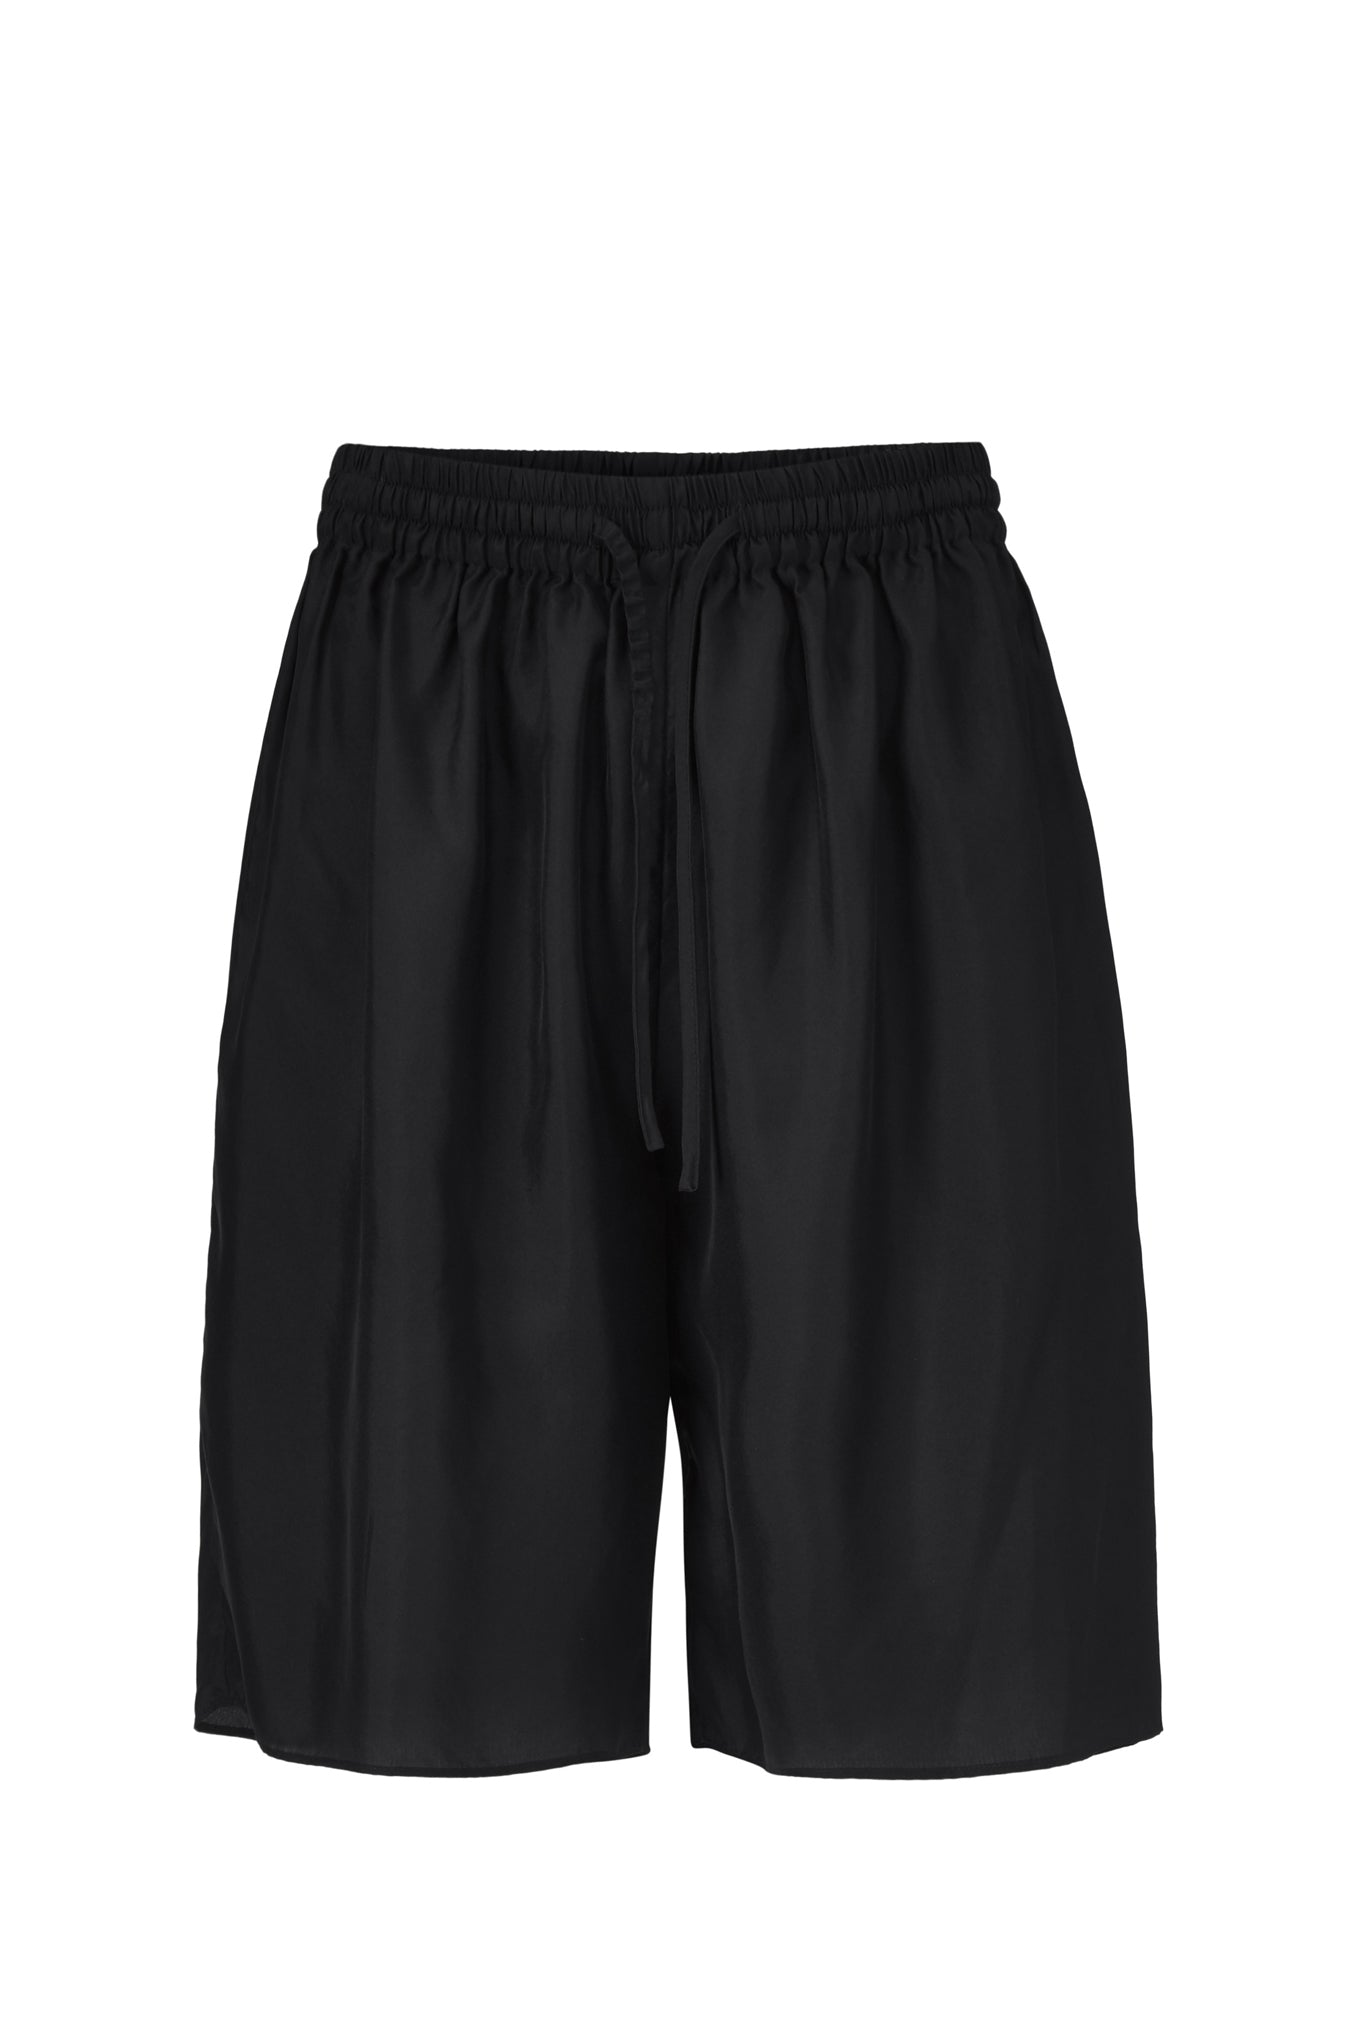 BEA SHORTS - BLACK